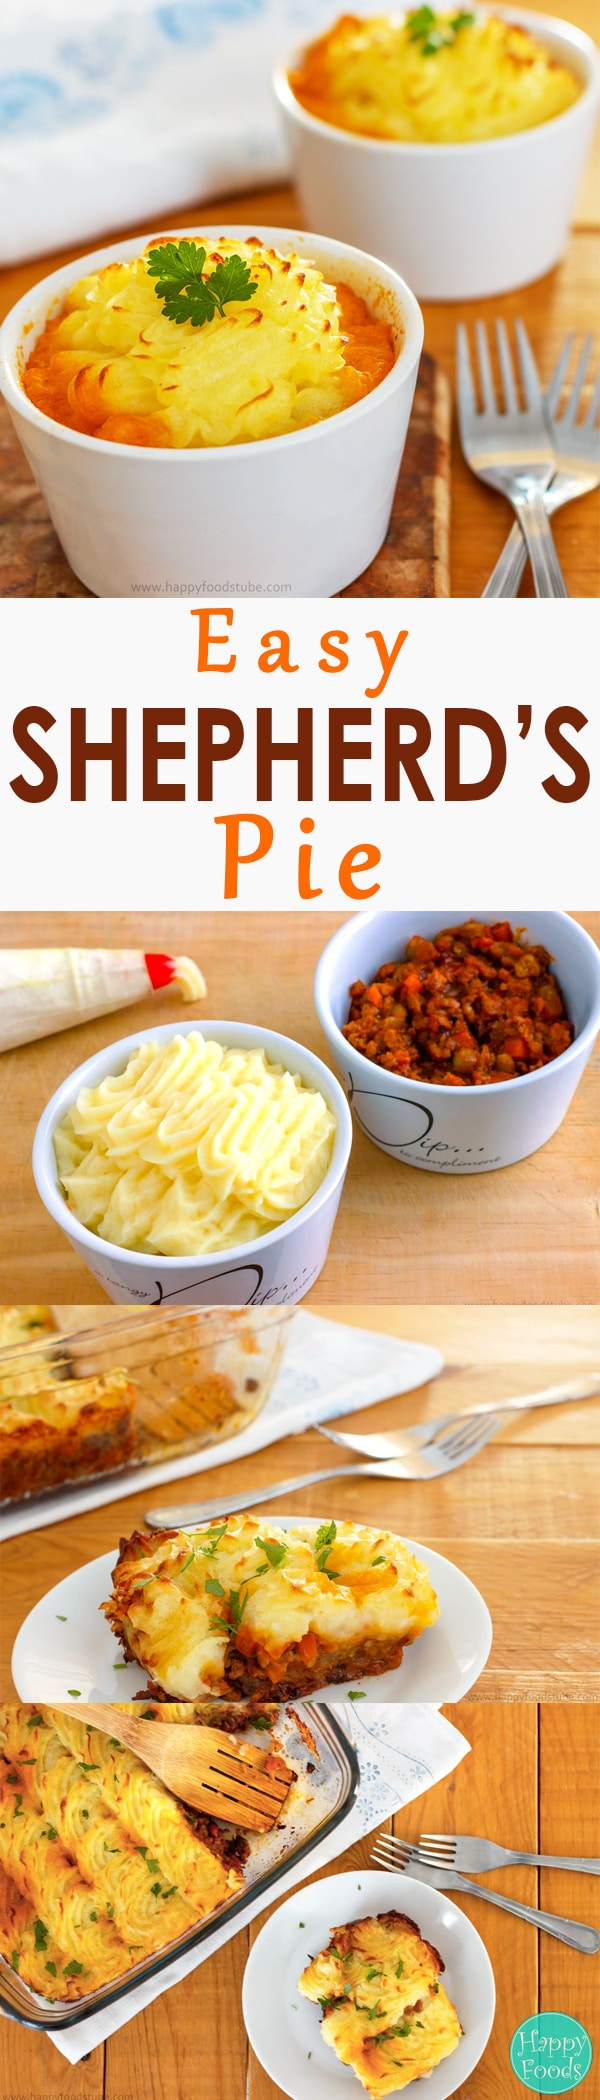 Easy Shepherd's Pie Recipe - Real comfort food, family favorite recipe, lunch & dinner, home cooking, homemade, easy recipes | happyfoodstube.com